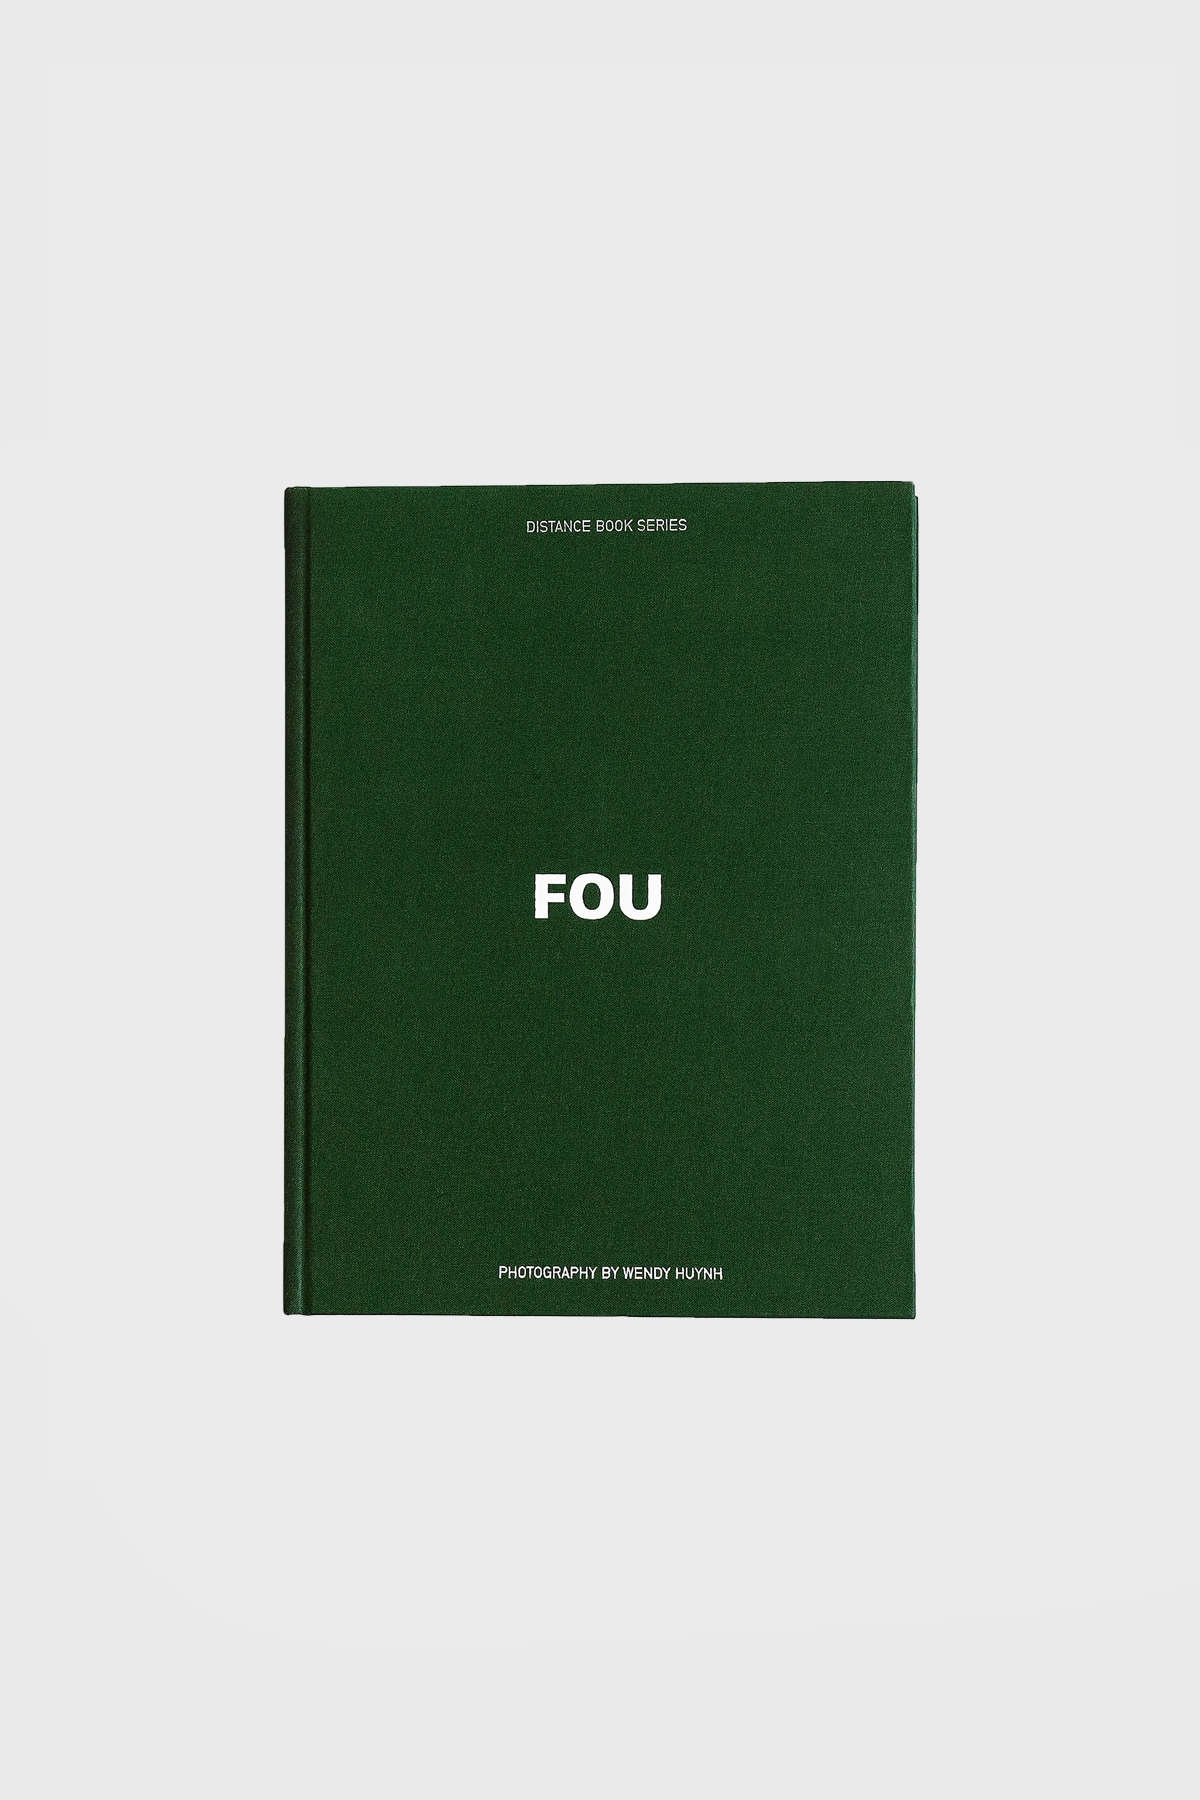 Distance - Book Series - Fou